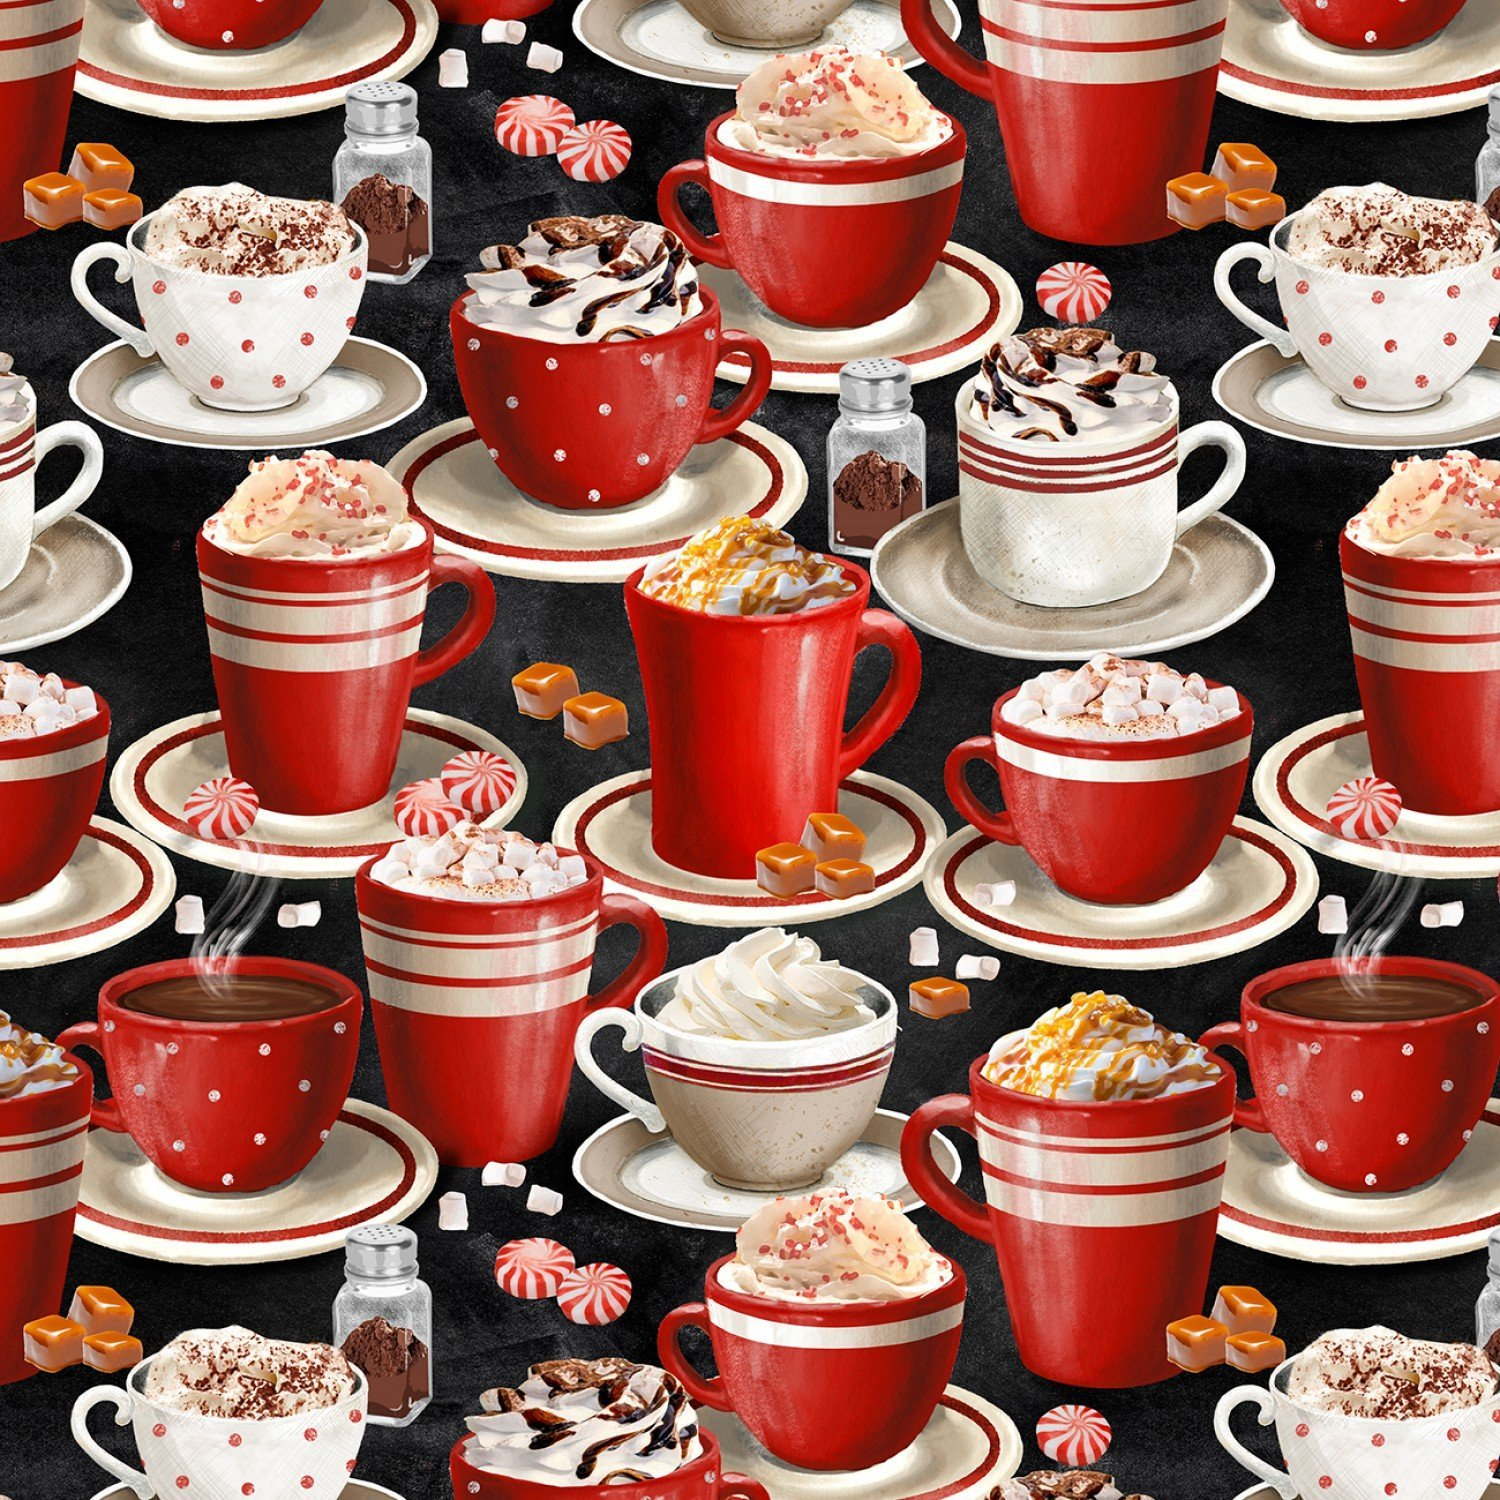 Time For Hot Cocoa - Packed Hot Chocolates 30523-392 Multi